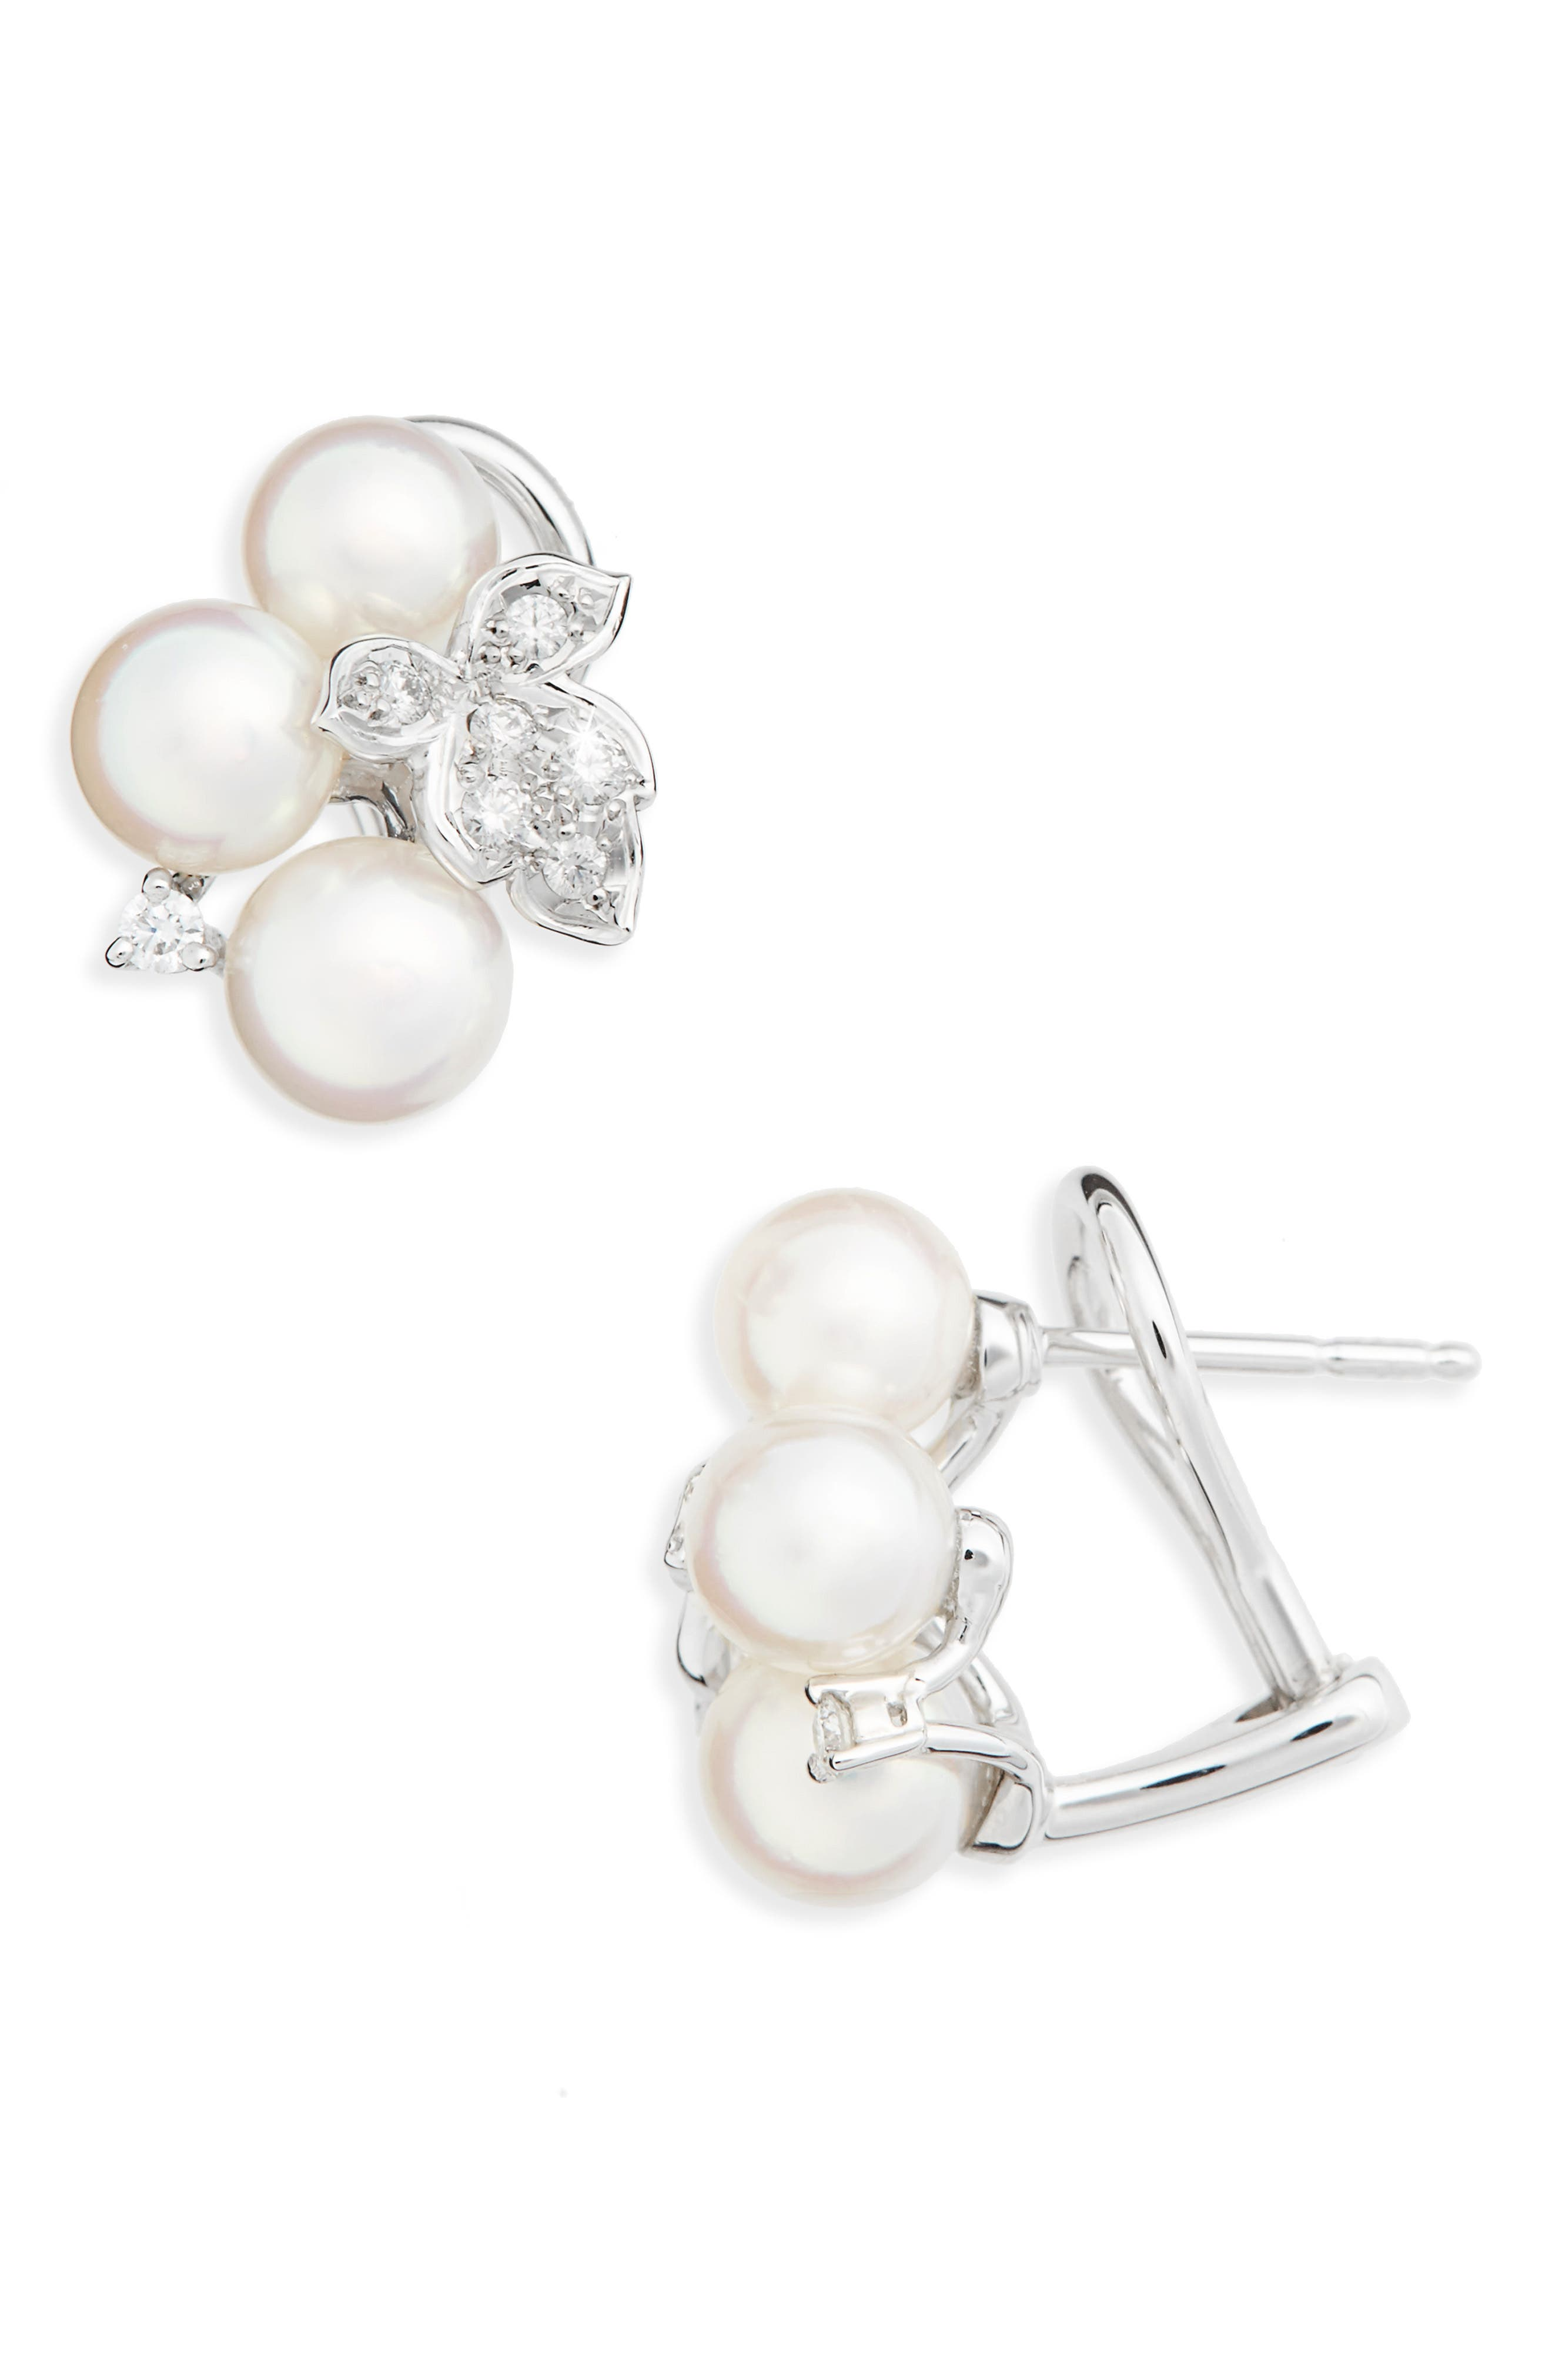 Main Image - Mikimoto Pearl & Diamond Cluster Earrings